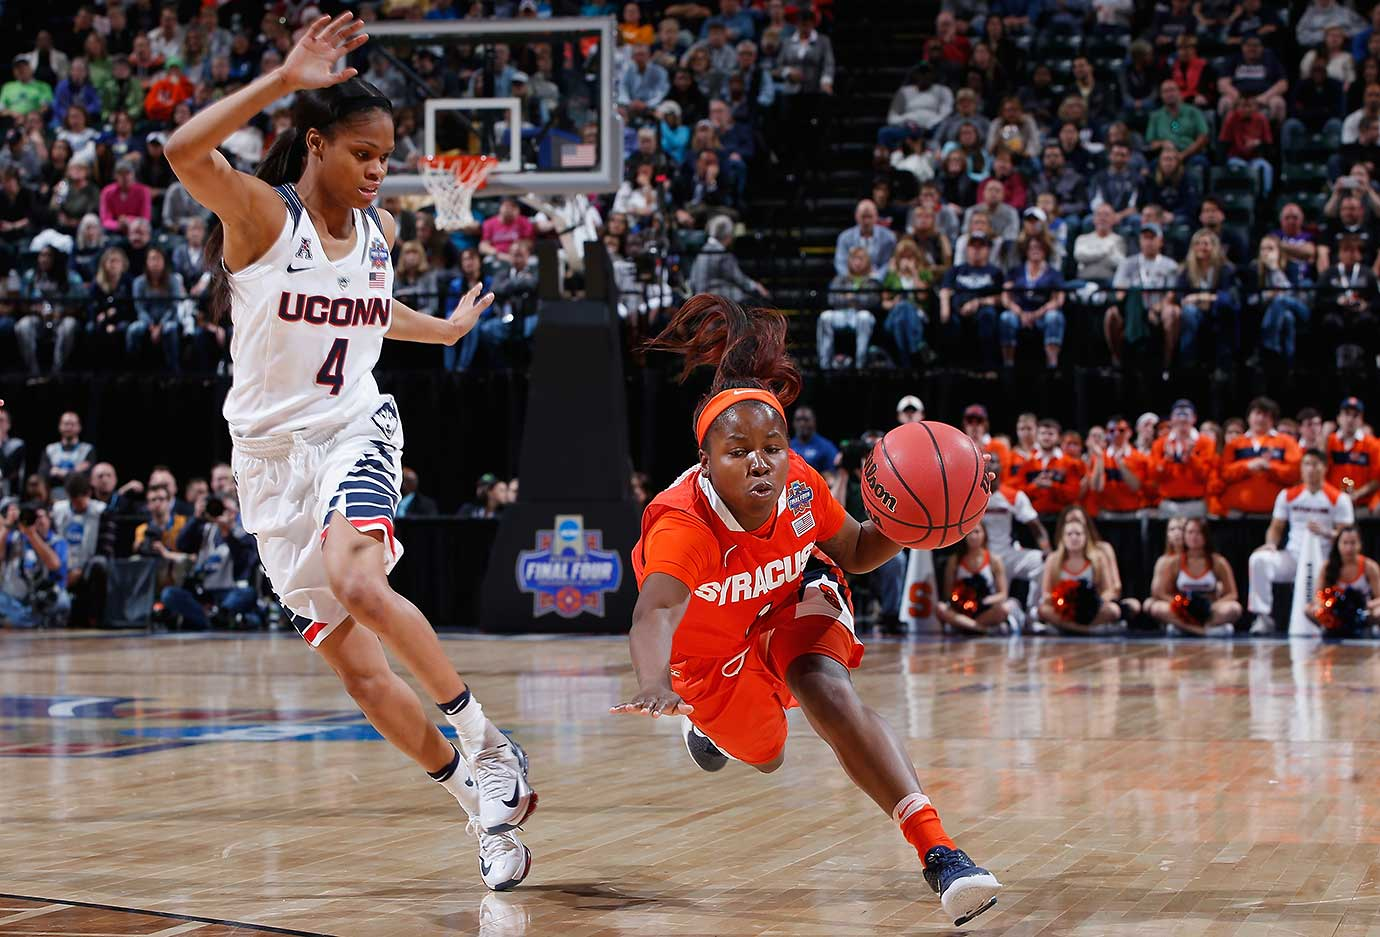 Alexis Peterson of Syracuse drives against Moriah Jefferson of Connecticut in the women's national title game.